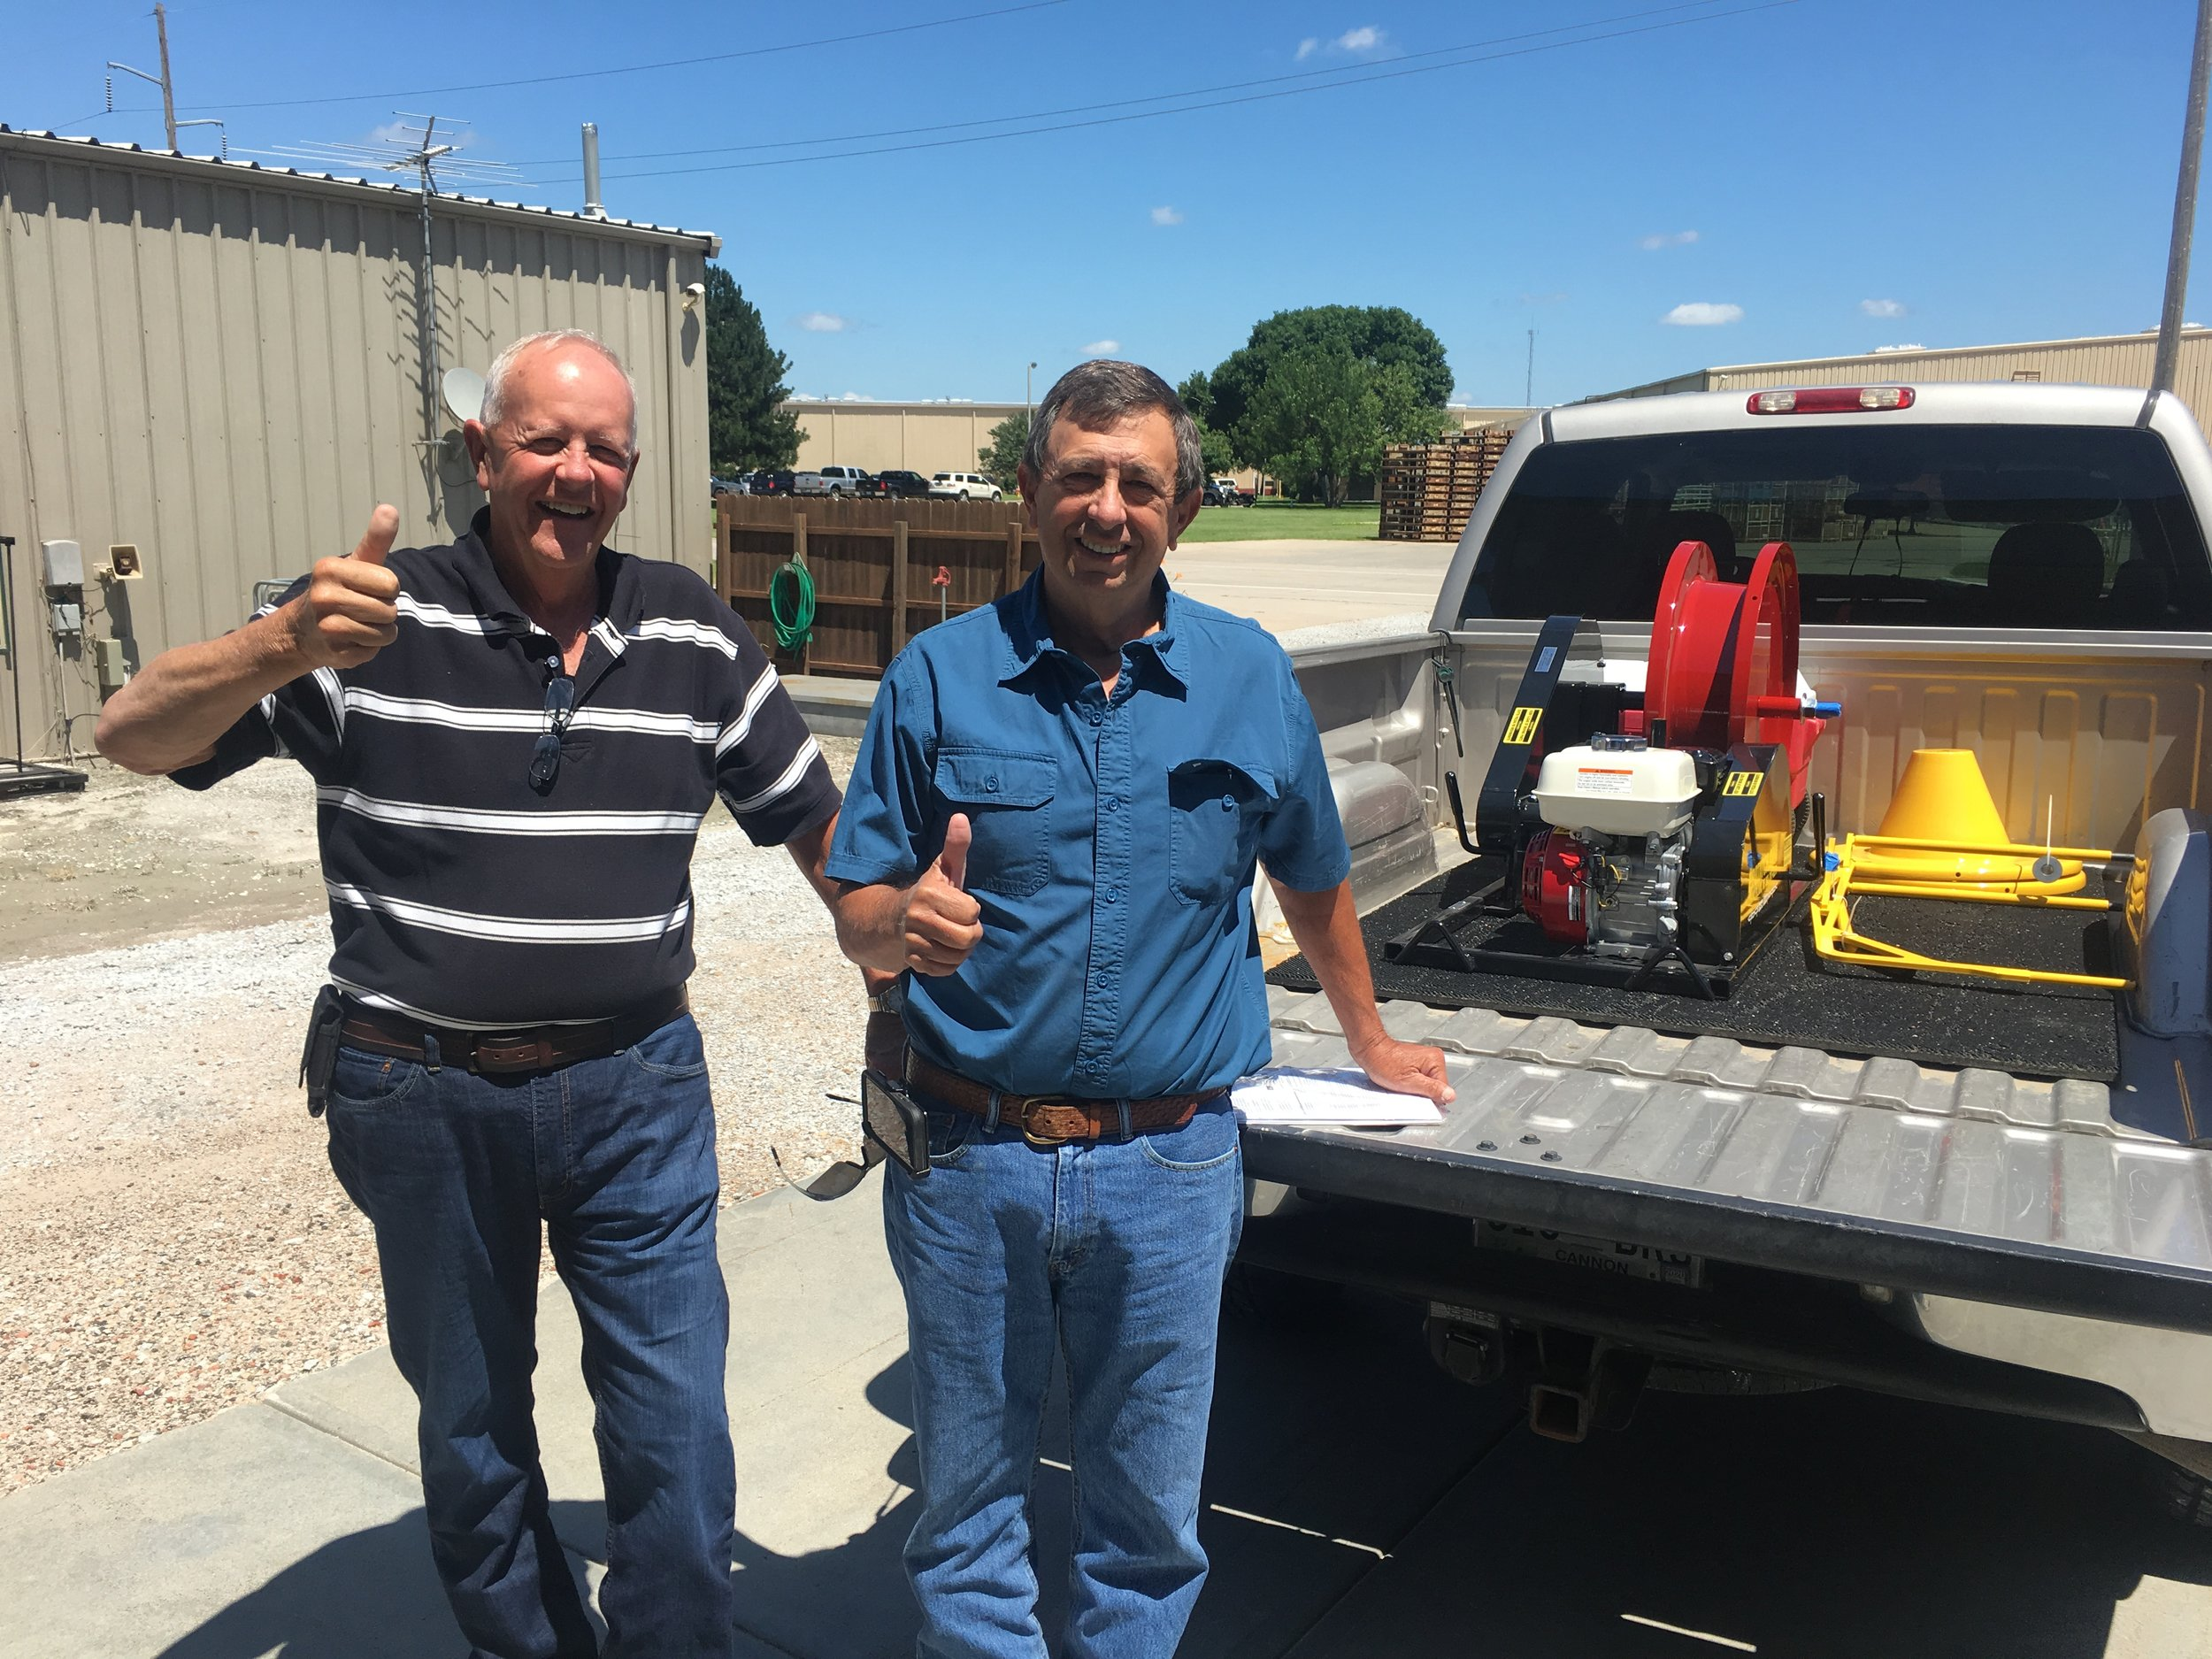 Jimmy McElroy ( left ) from Morganfield, Ky. and Fred Adams ( right ) from Readyville, Tn. drove through Grand Island and stopped to picked up a new Honda gas powered winder. After a great visit, they were on their way back home to use their new winder.